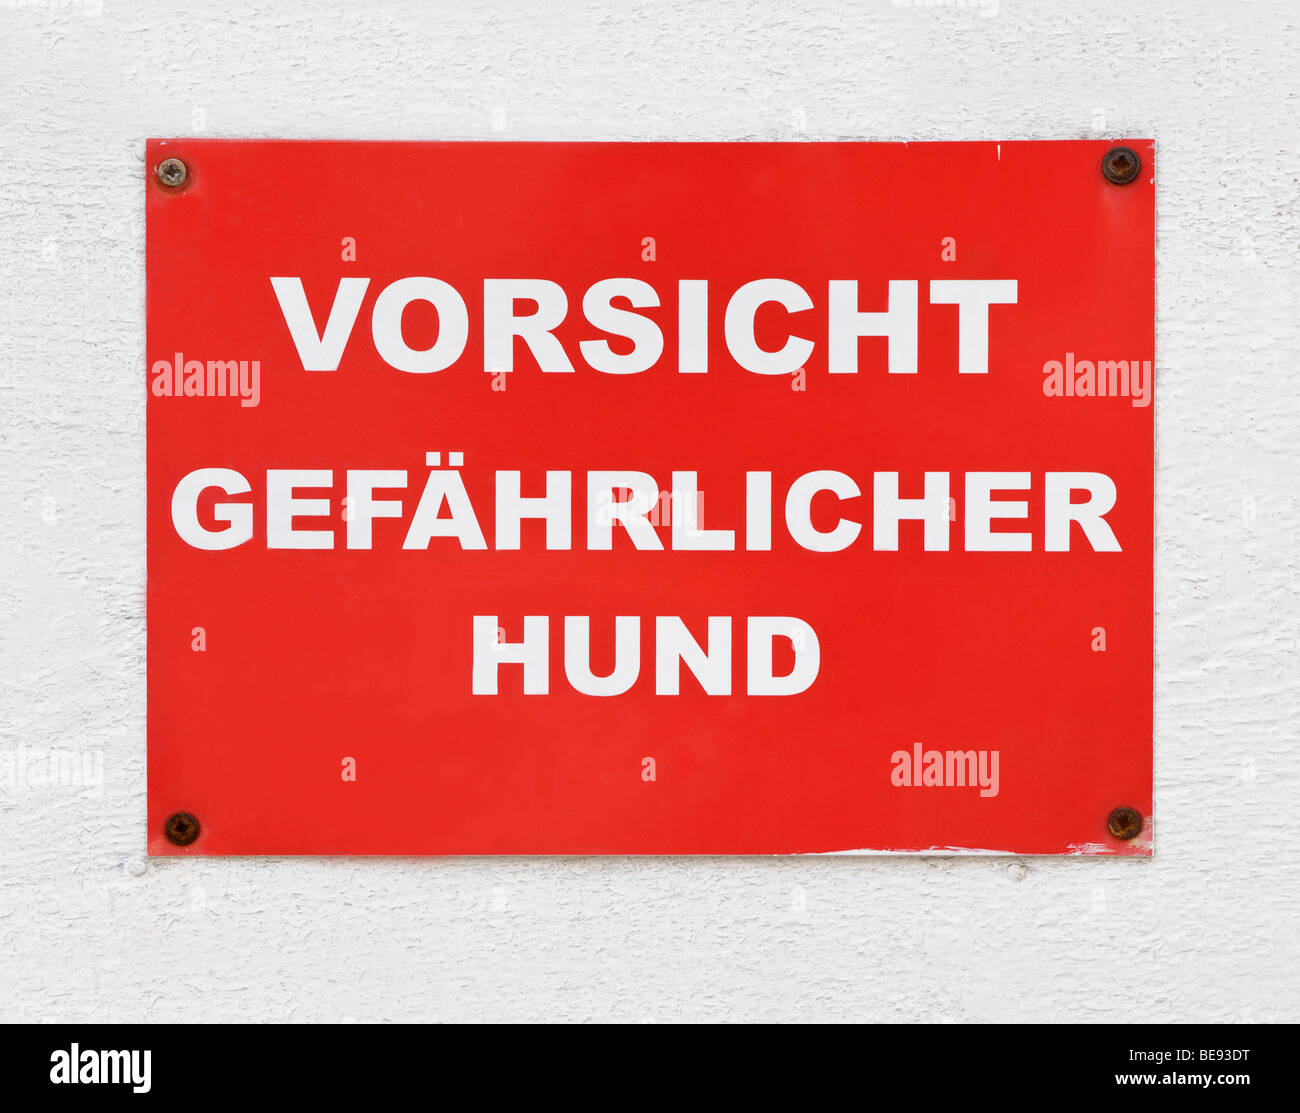 Red sign, Vorsicht gefaehrlicher Hund, German for Beware of dangerous dog - Stock Image